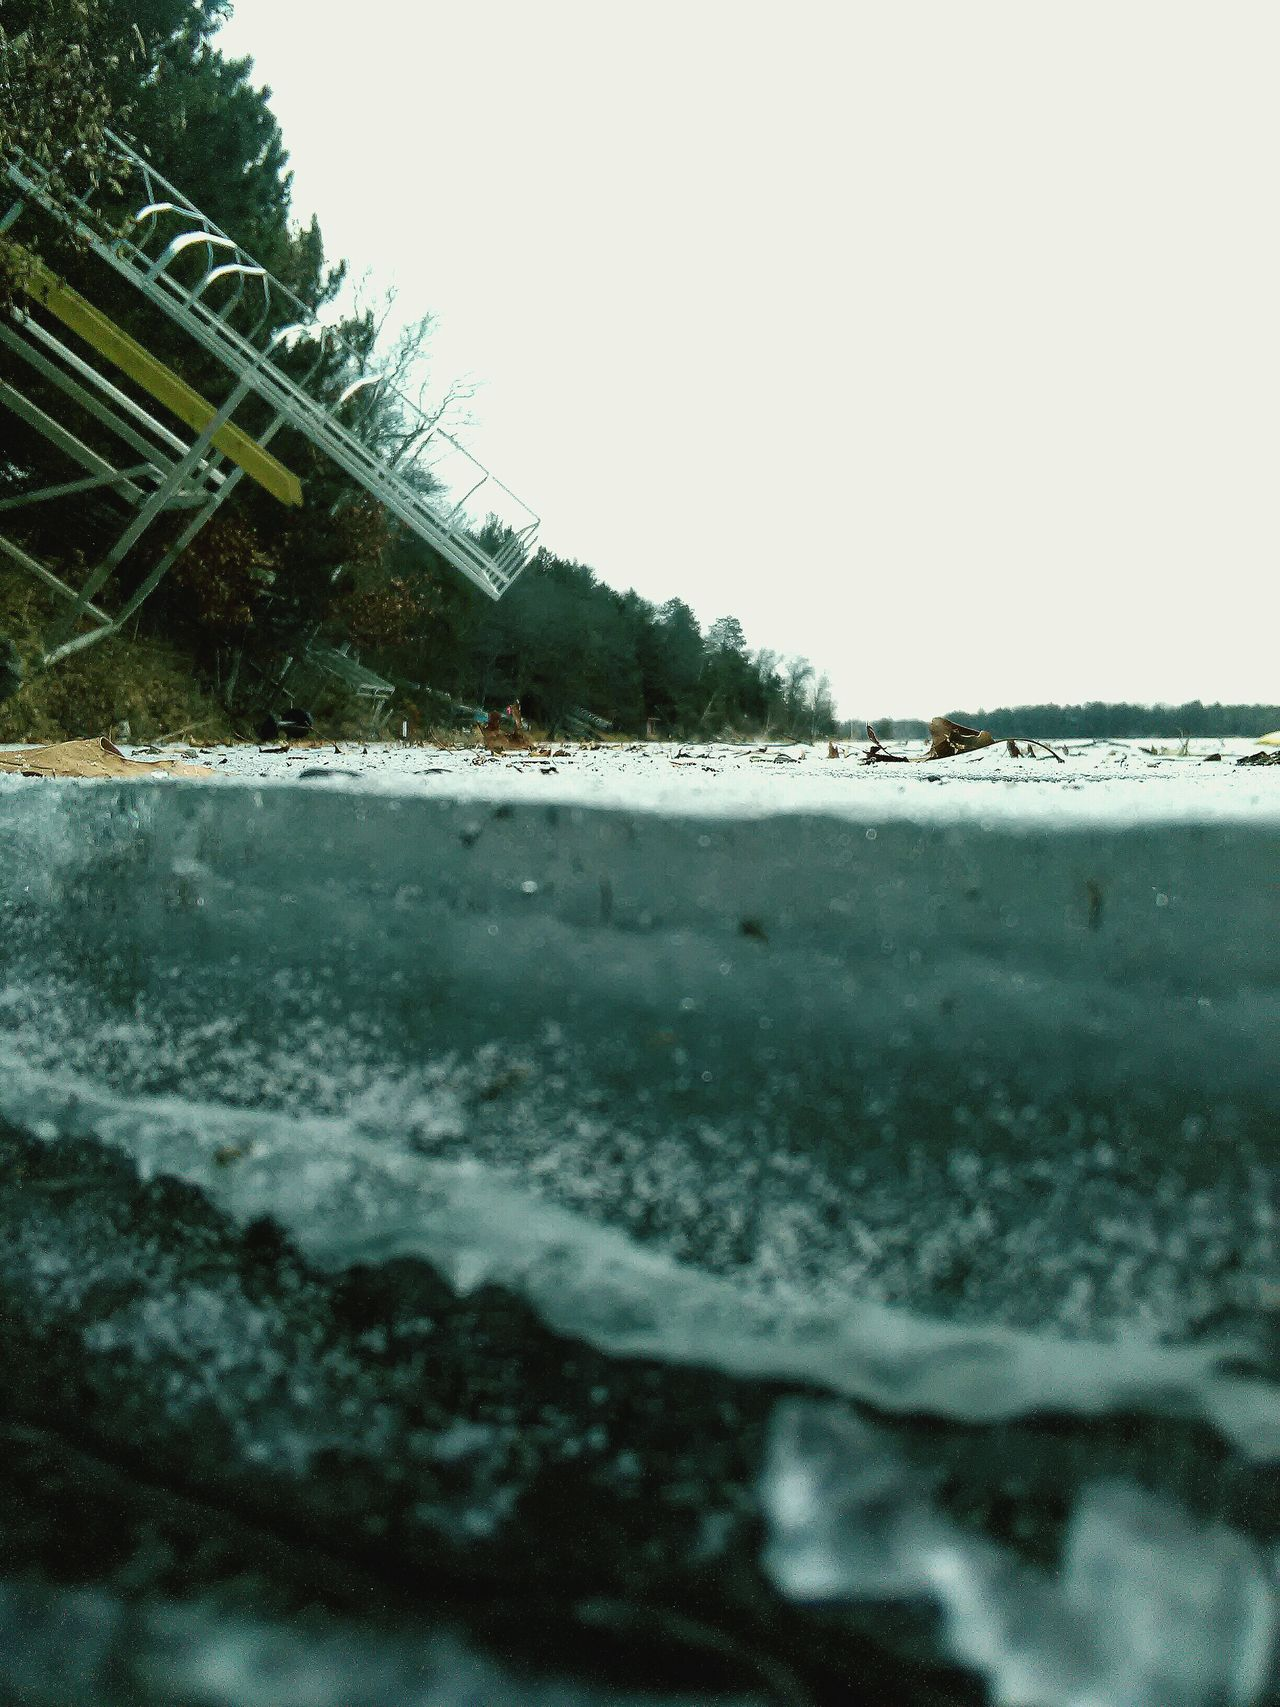 Lets get crackin' on this spring thaw! No People Outdoors Nature Day Frozen Lake Thawing Cracks Ice Steep Hill Resting Pontoon Spring Anticipation Sky EyeEm New Here